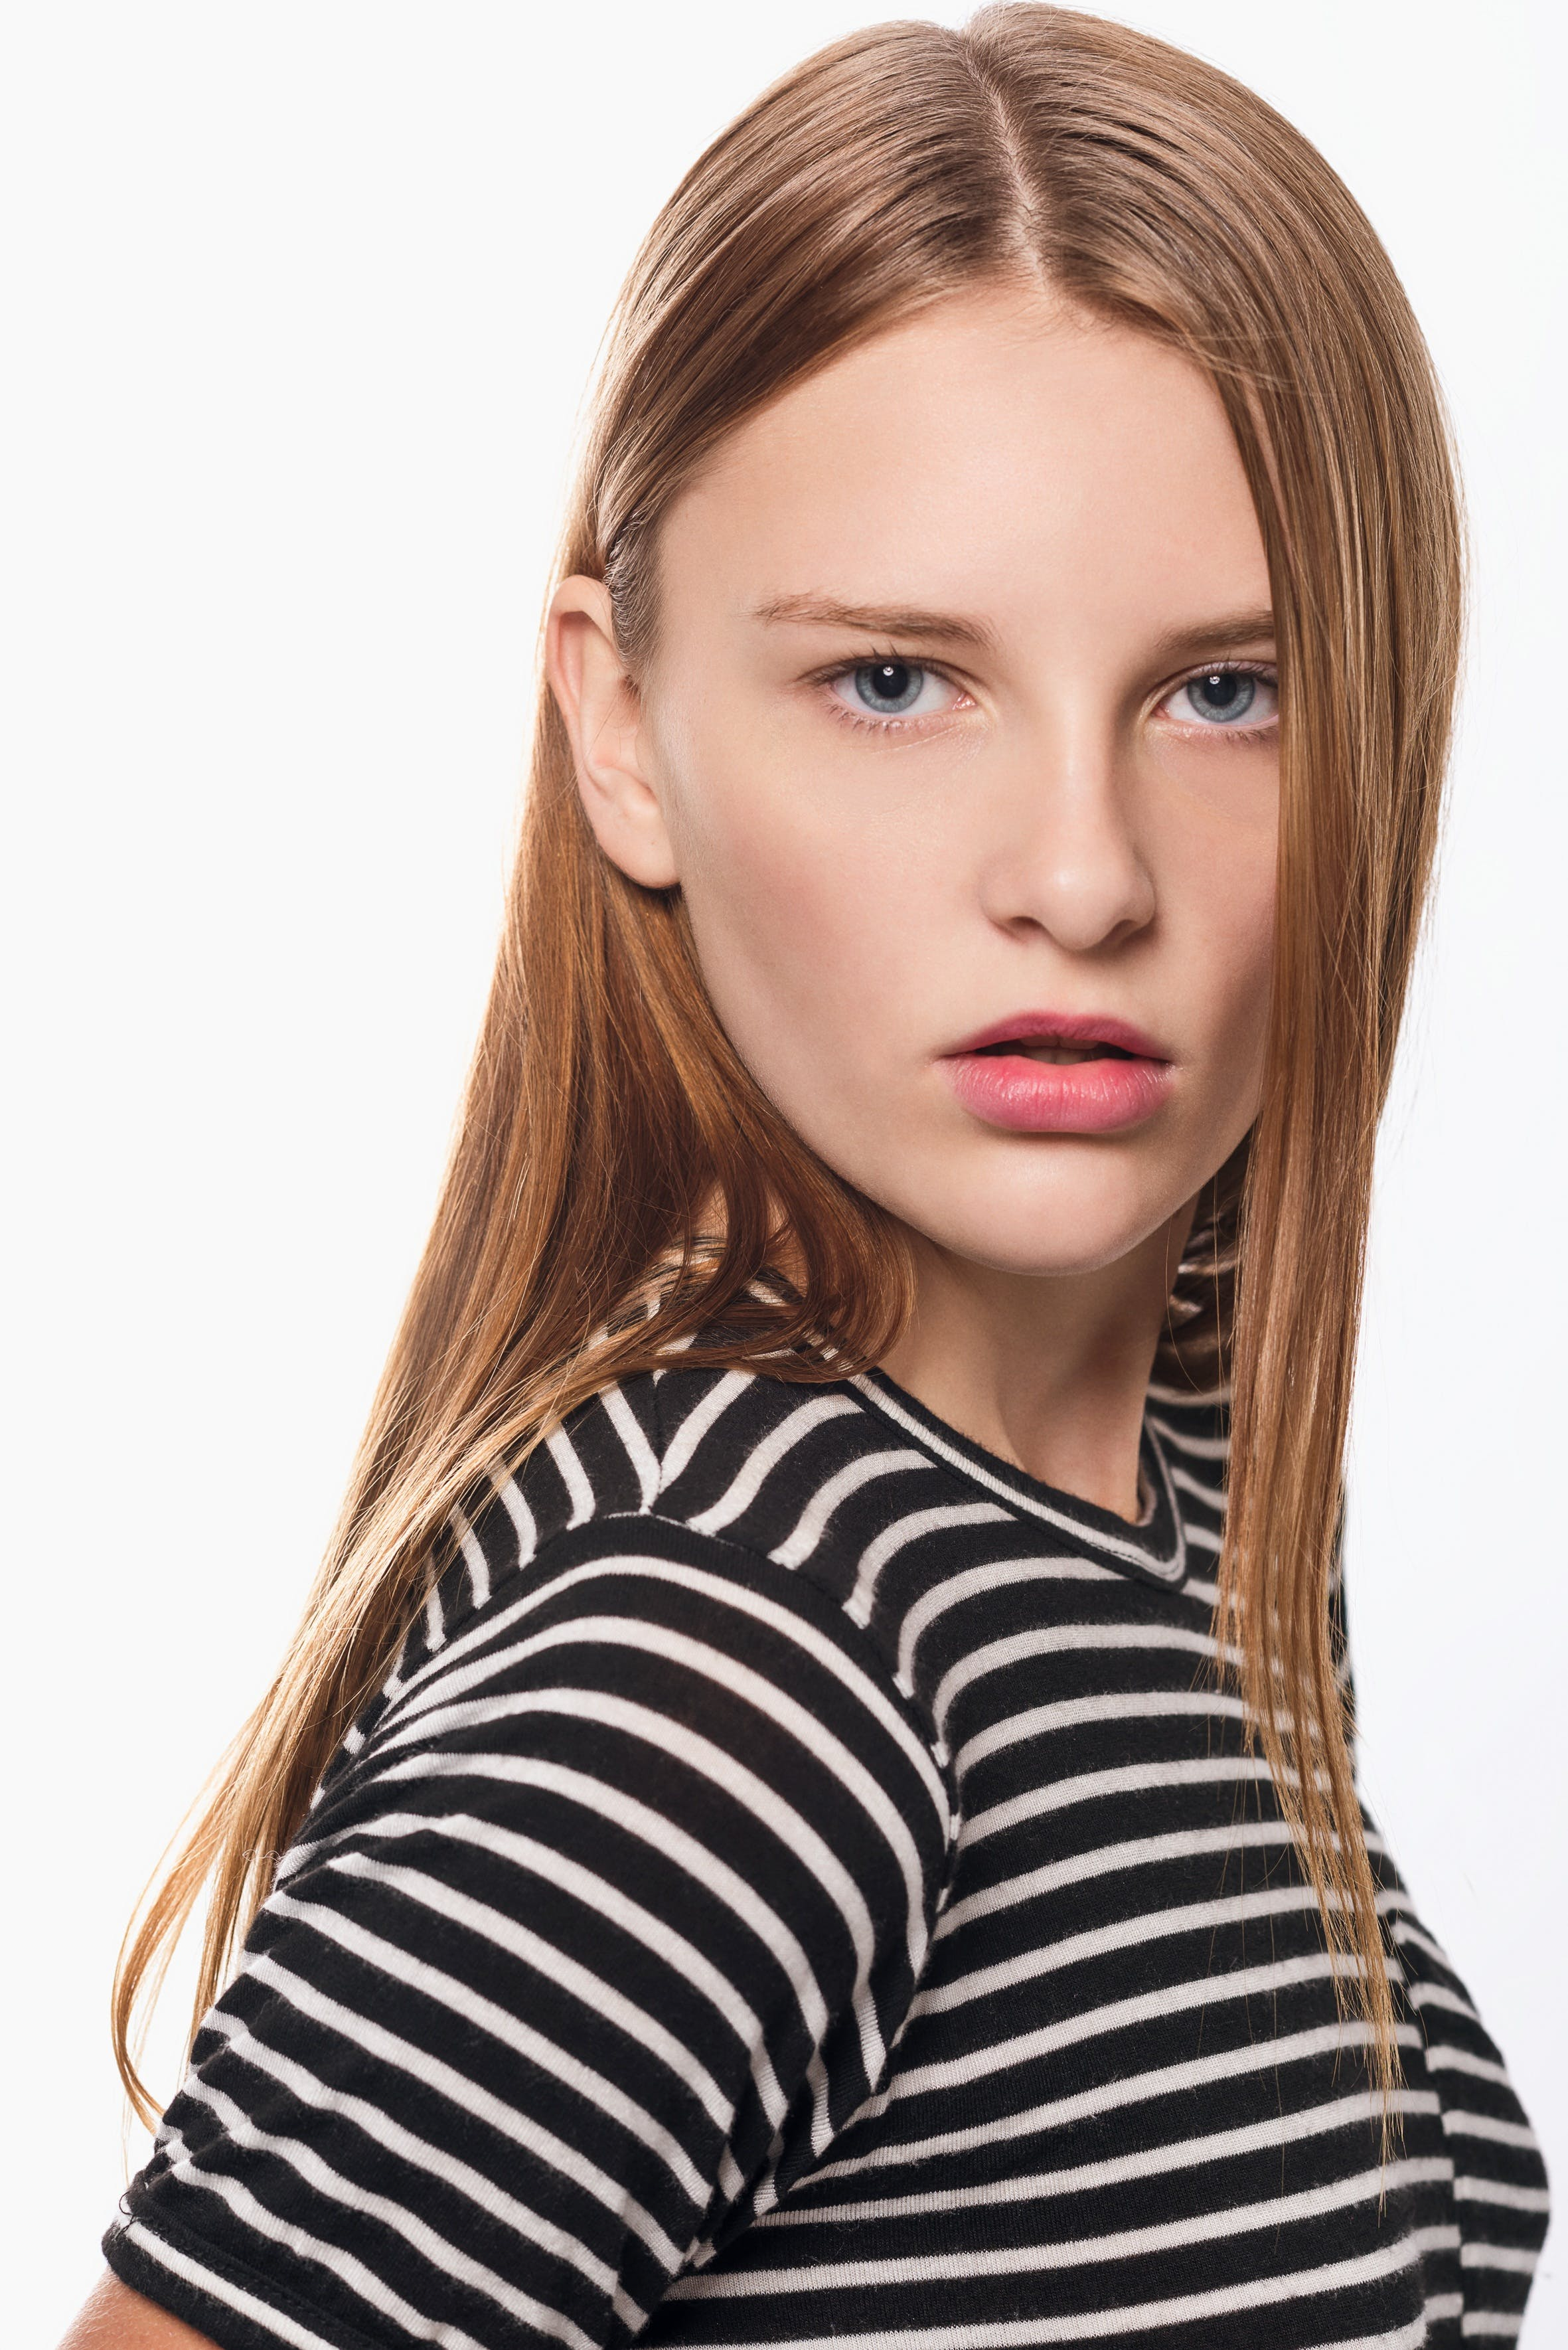 Woman in Black and White Striped Top